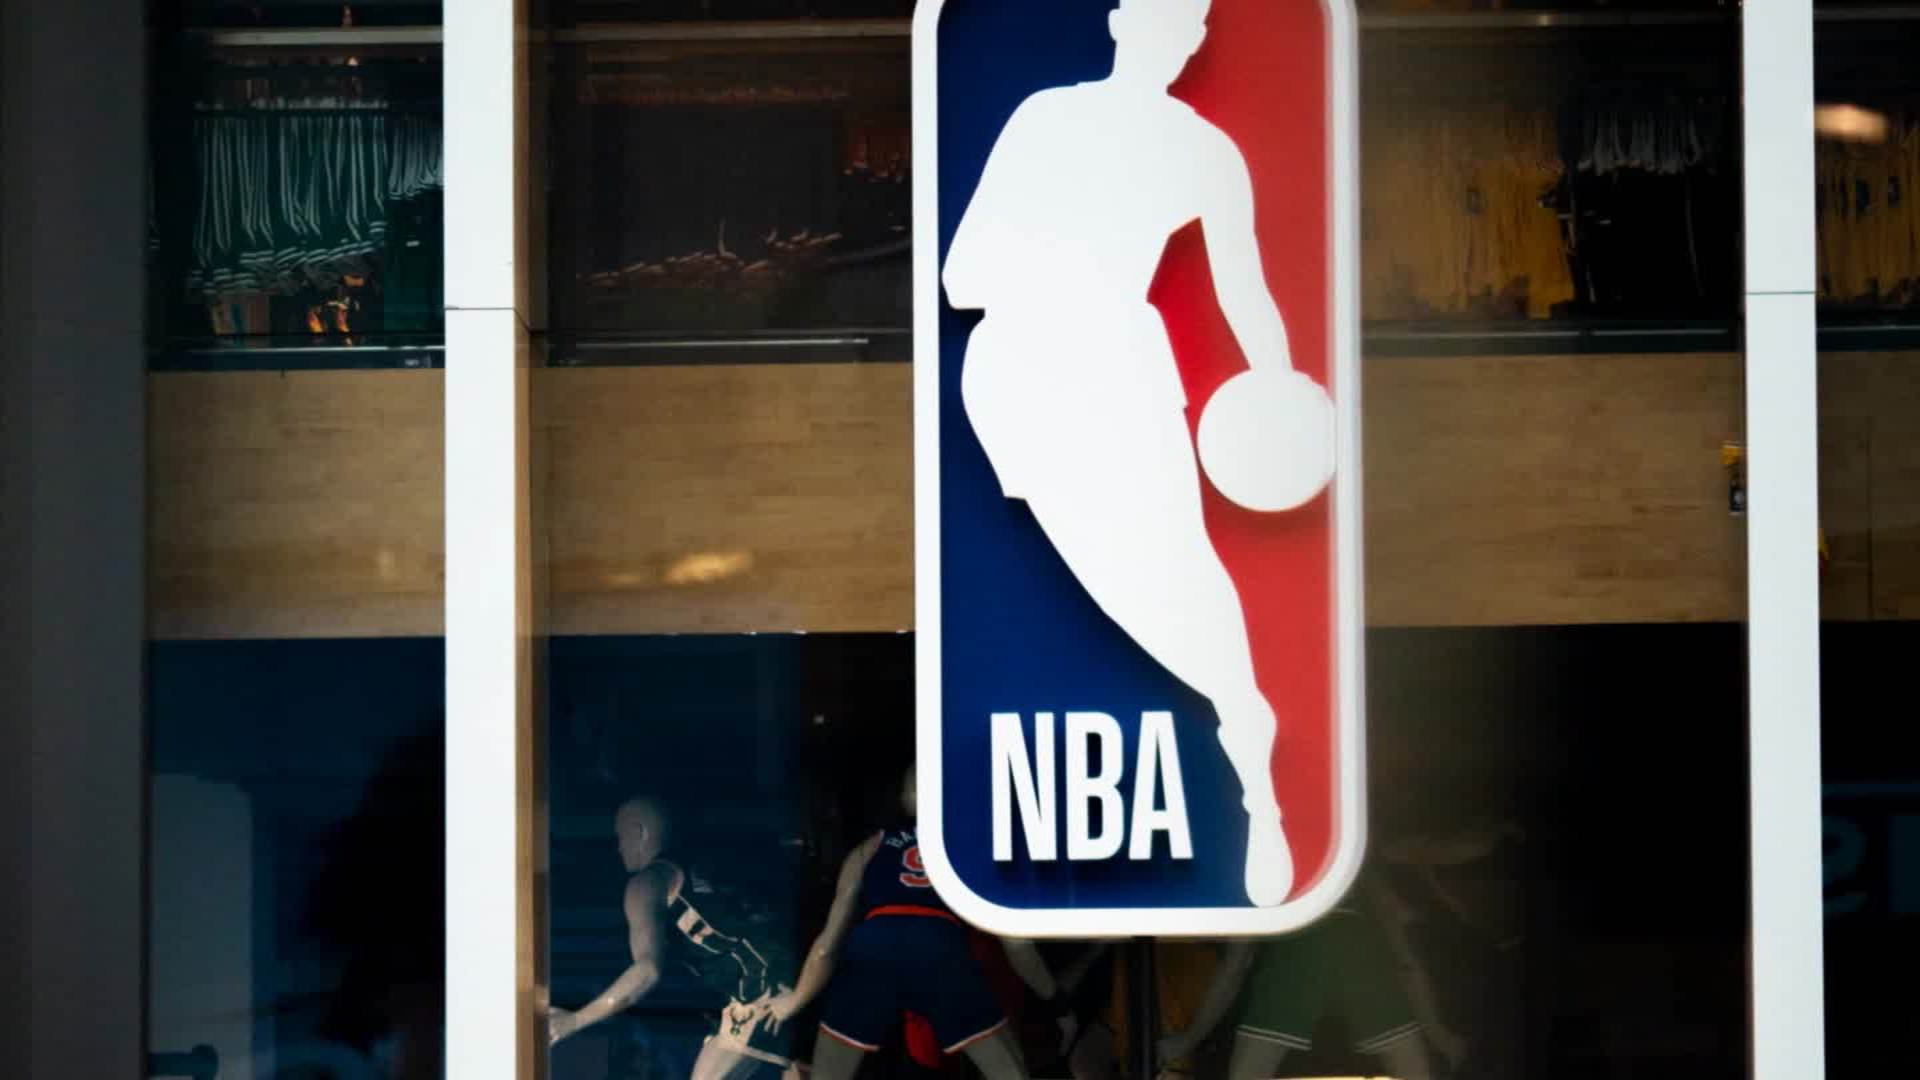 NBA is reportedly expected to approve a plan to continue the season with 22 teams